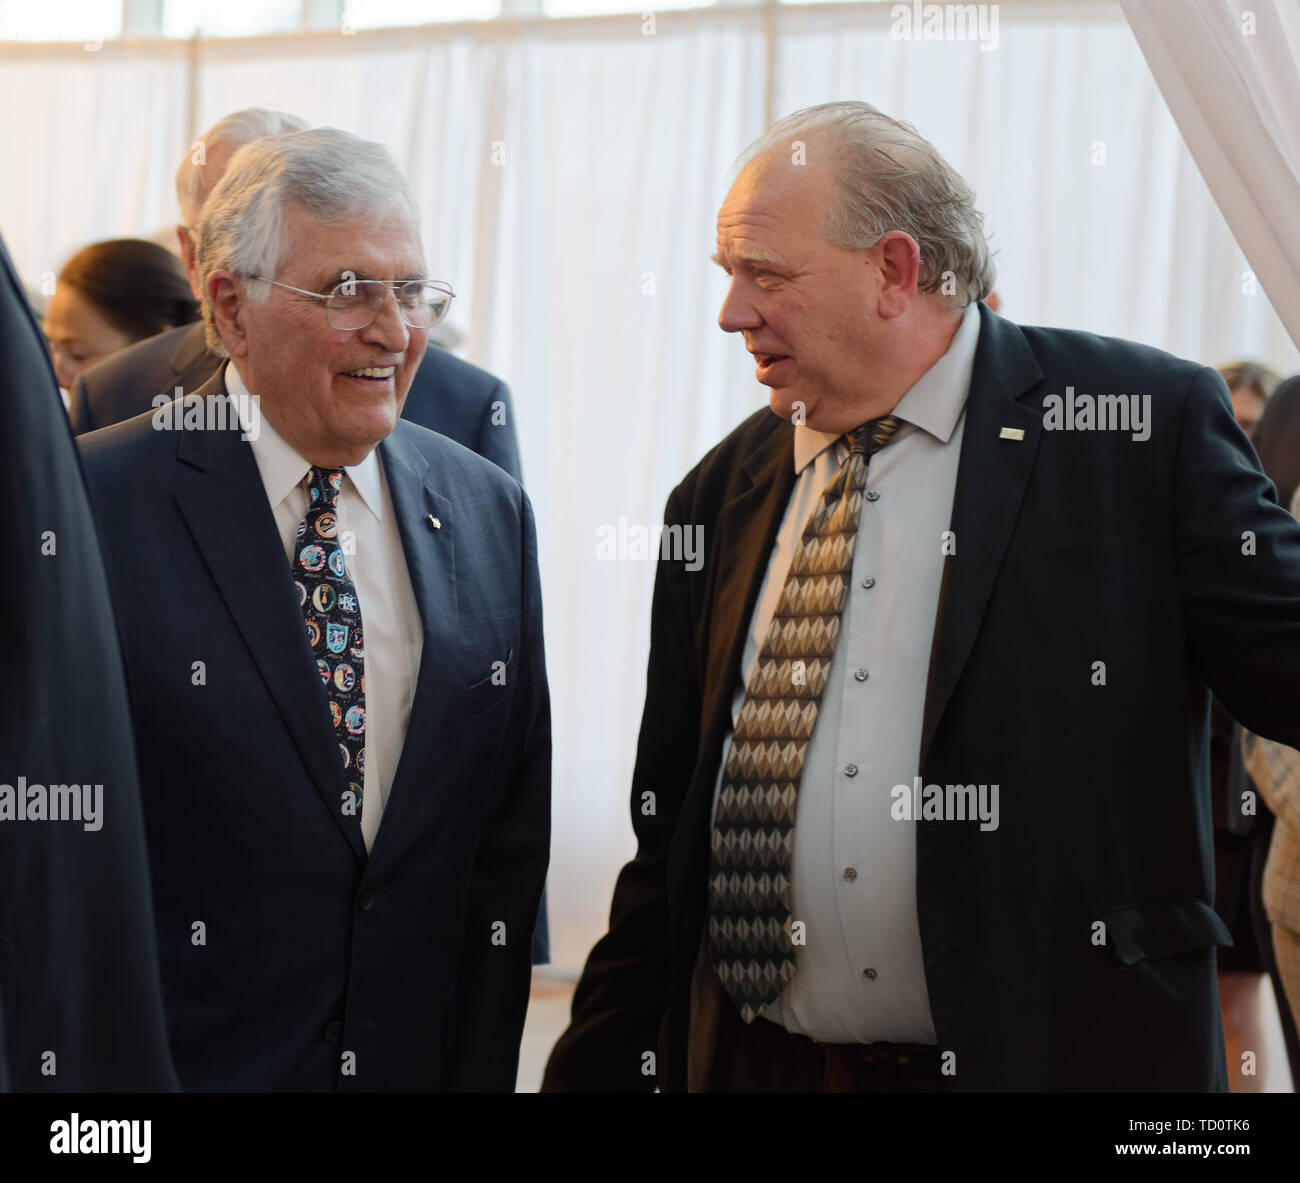 Garden City, New York, USA. 6th June, 2019. At left, Apollo 7 astronaut HARRISON SCHMITT is about to walk through entrance curtain, at Cradle of Aviation Museum, to Apollo at 50 Anniversary Dinner, an Apollo astronaut tribute celebrating the Apollo 11 mission Moon landing. Credit: Ann Parry/ZUMA Wire/Alamy Live News - Stock Image